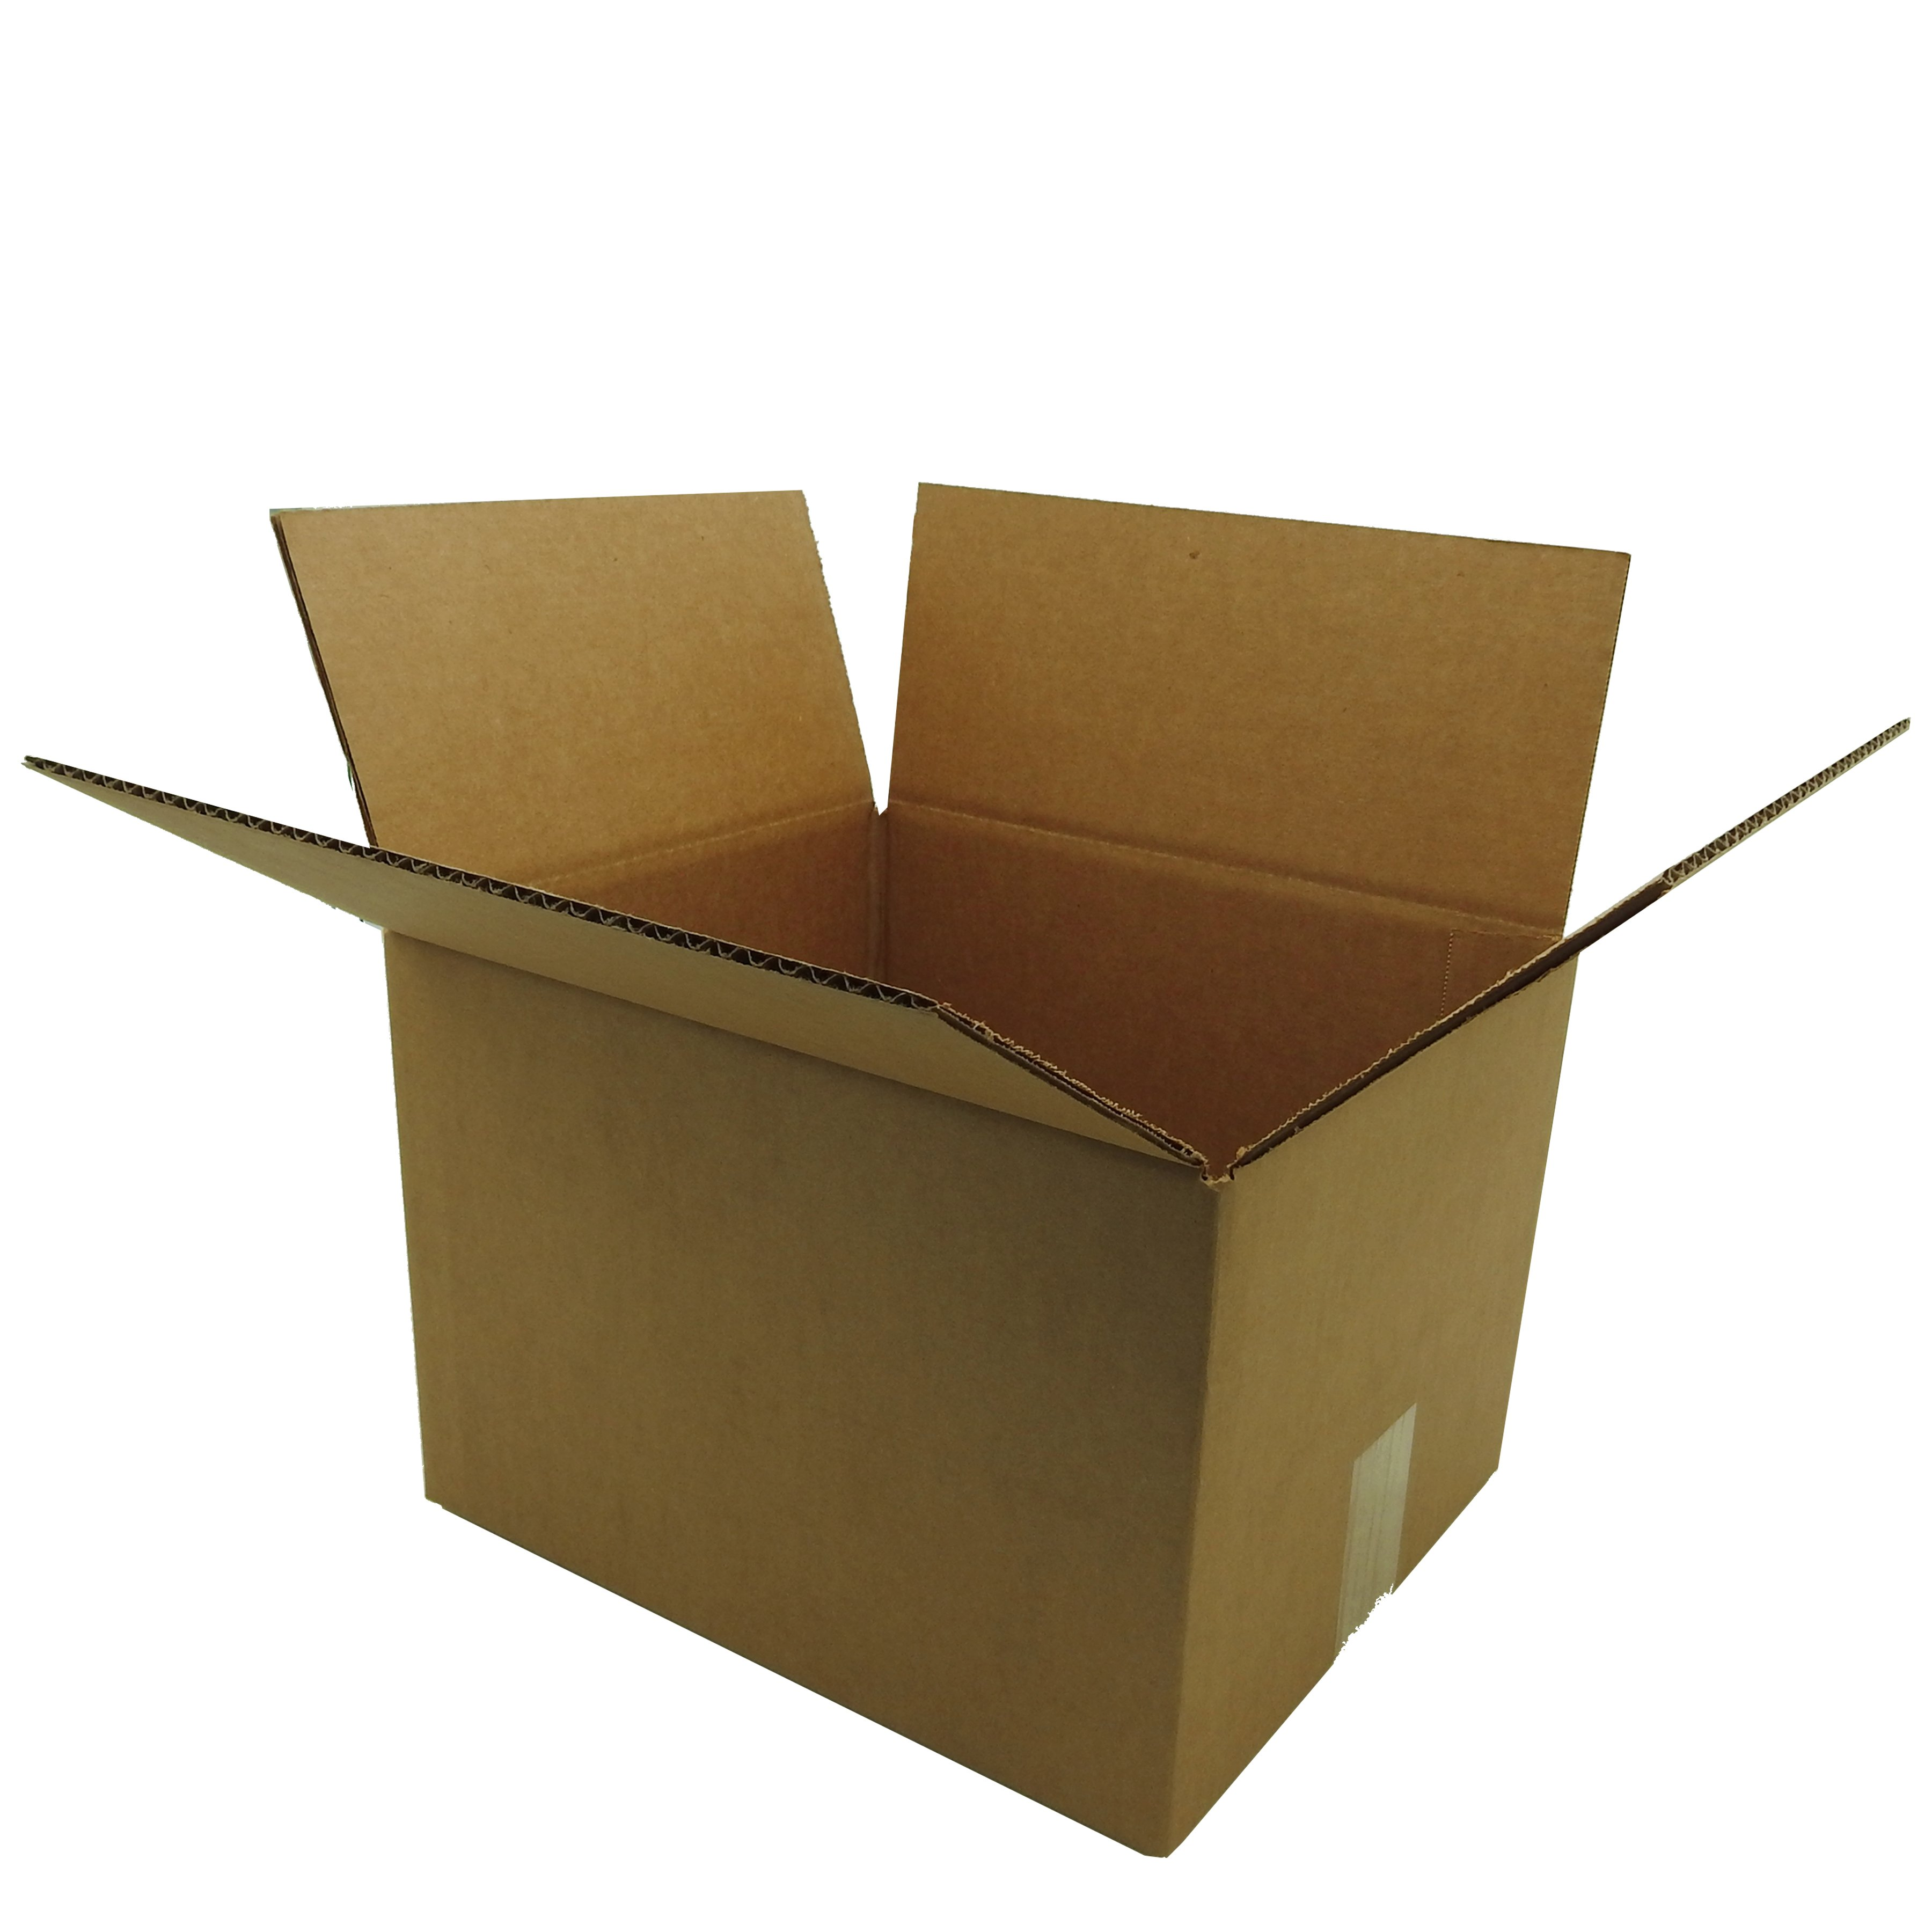 100 12x10x8 Corrugated Cardboard Shipping Mailing Packing Moving Boxes Box Carton